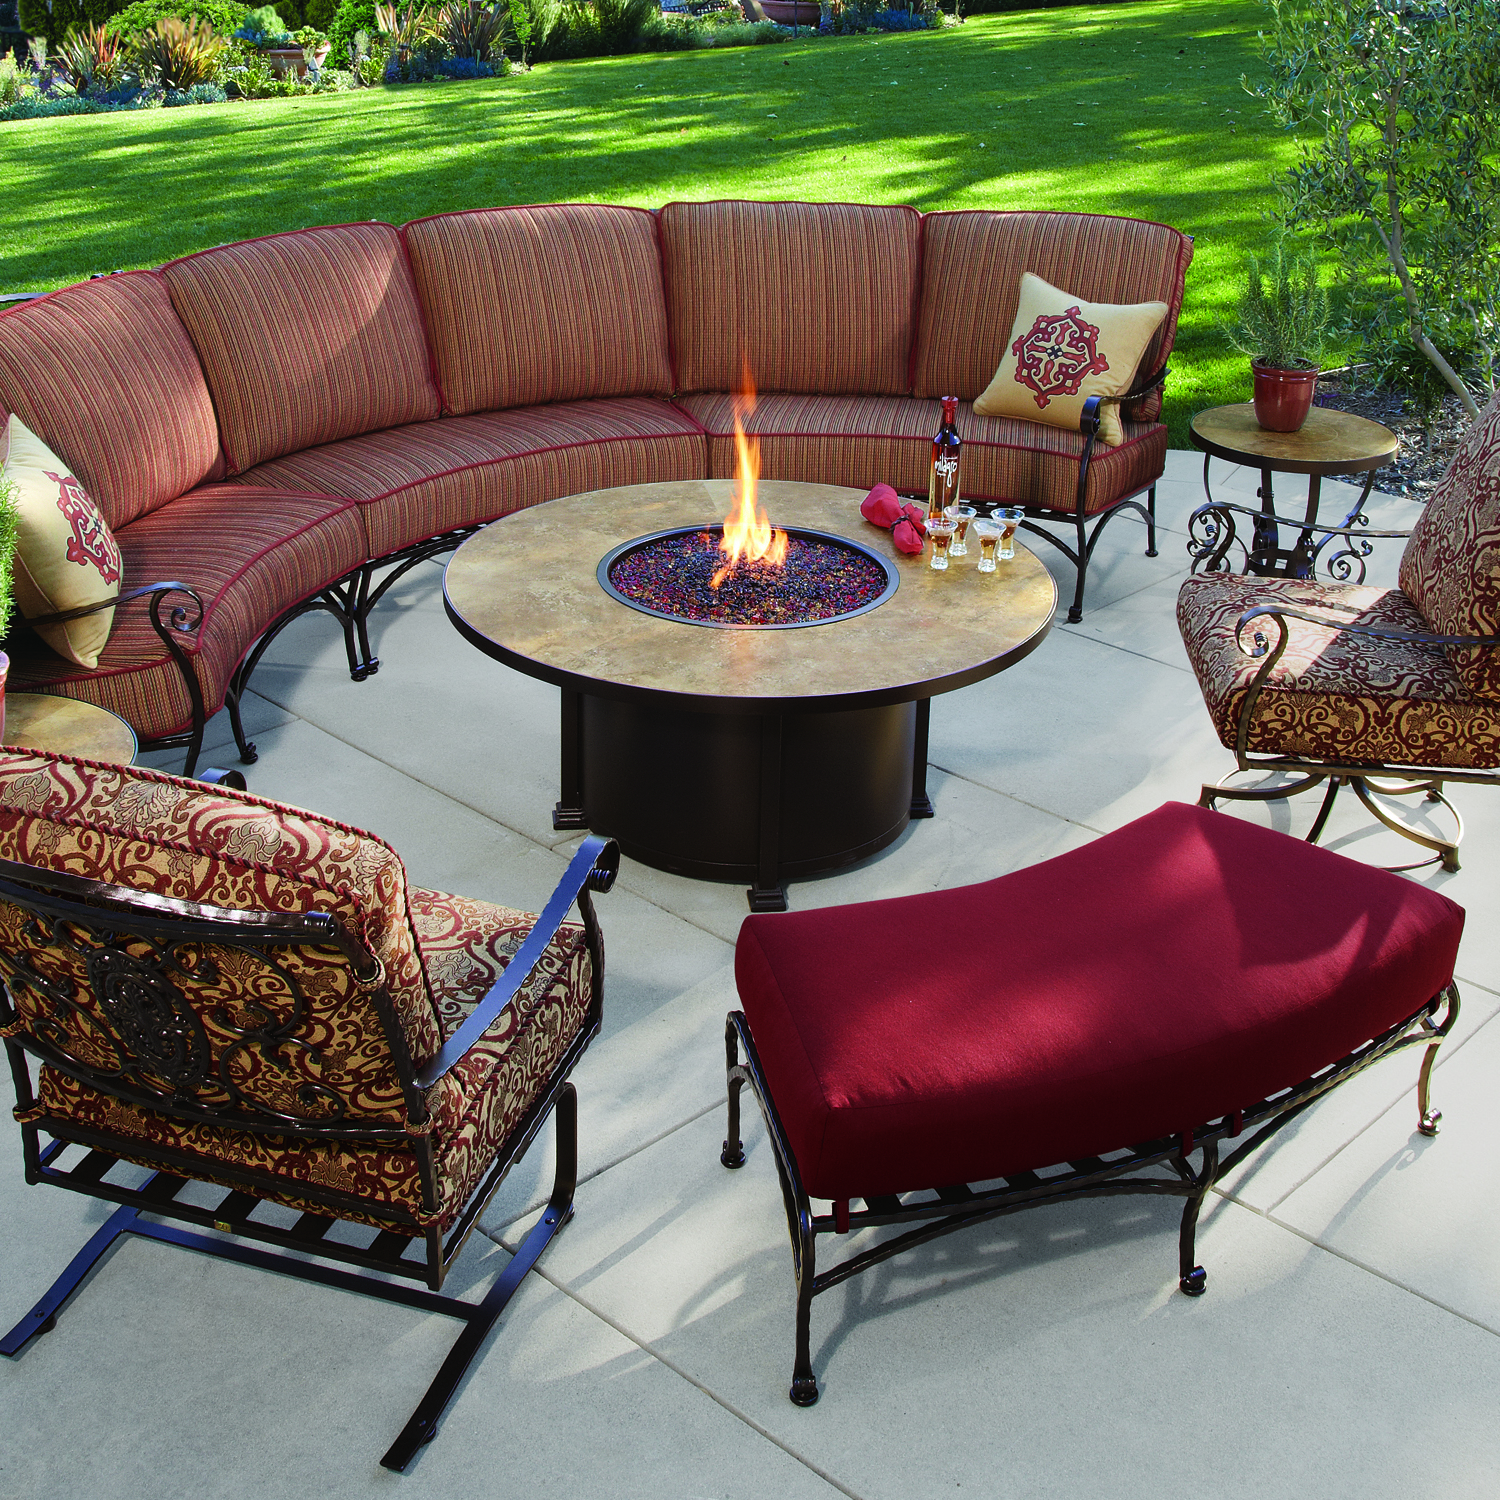 Ow Lee Patio Furniture Thatcher Pools And Spas